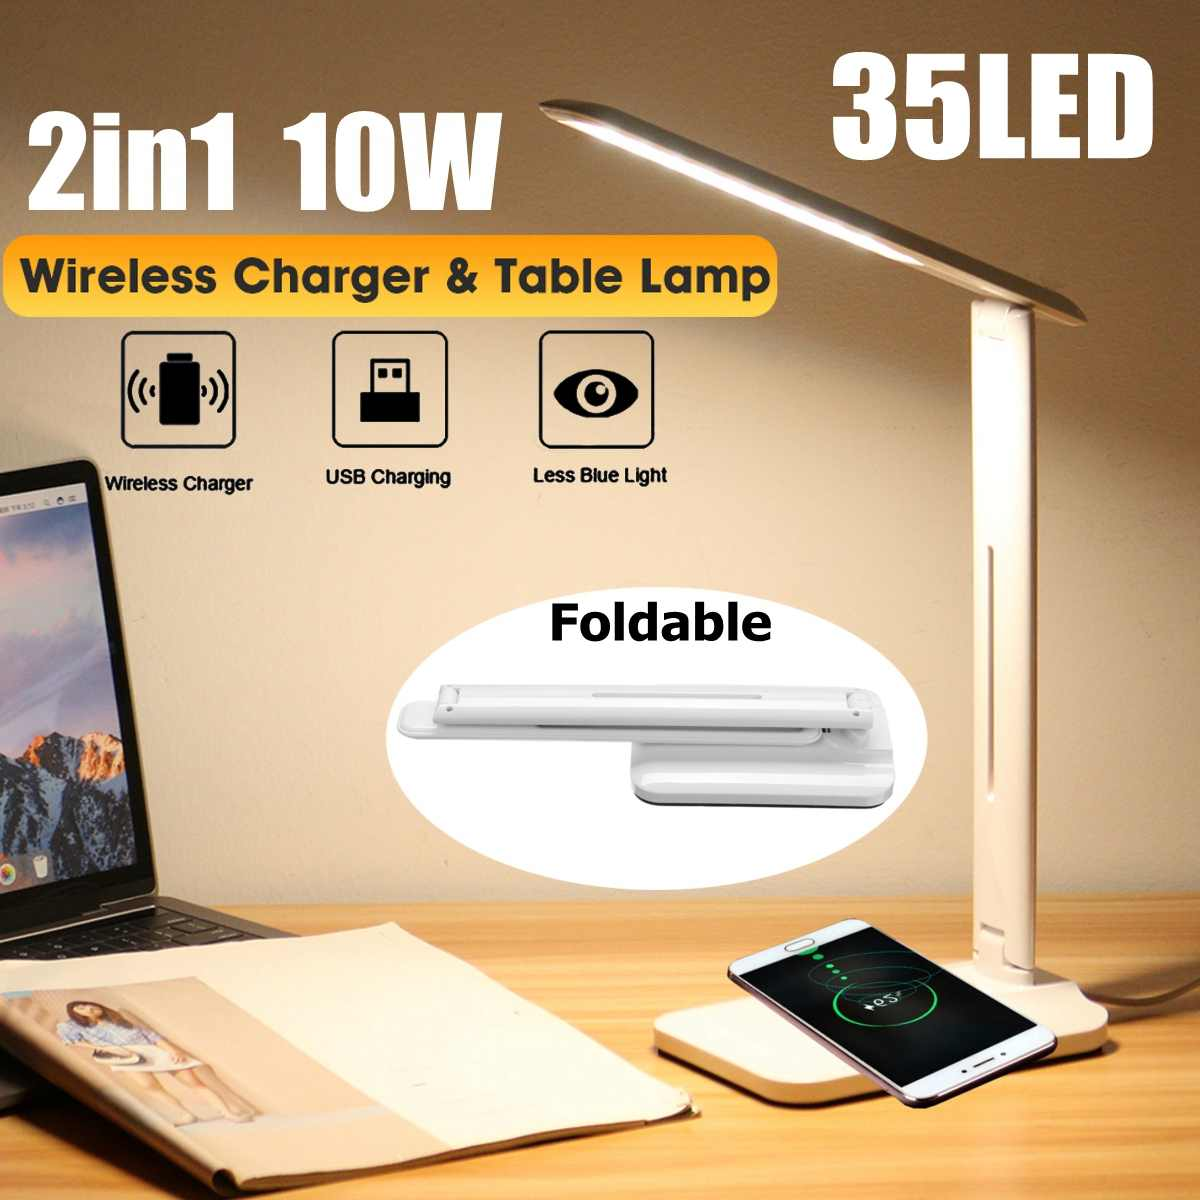 LED Desk Lamp 10W 2 In 1 Multi-Function Table Lamp Adjustment Home Lighting Fast Charging Wireless Charger 10W Power Qi Wireless